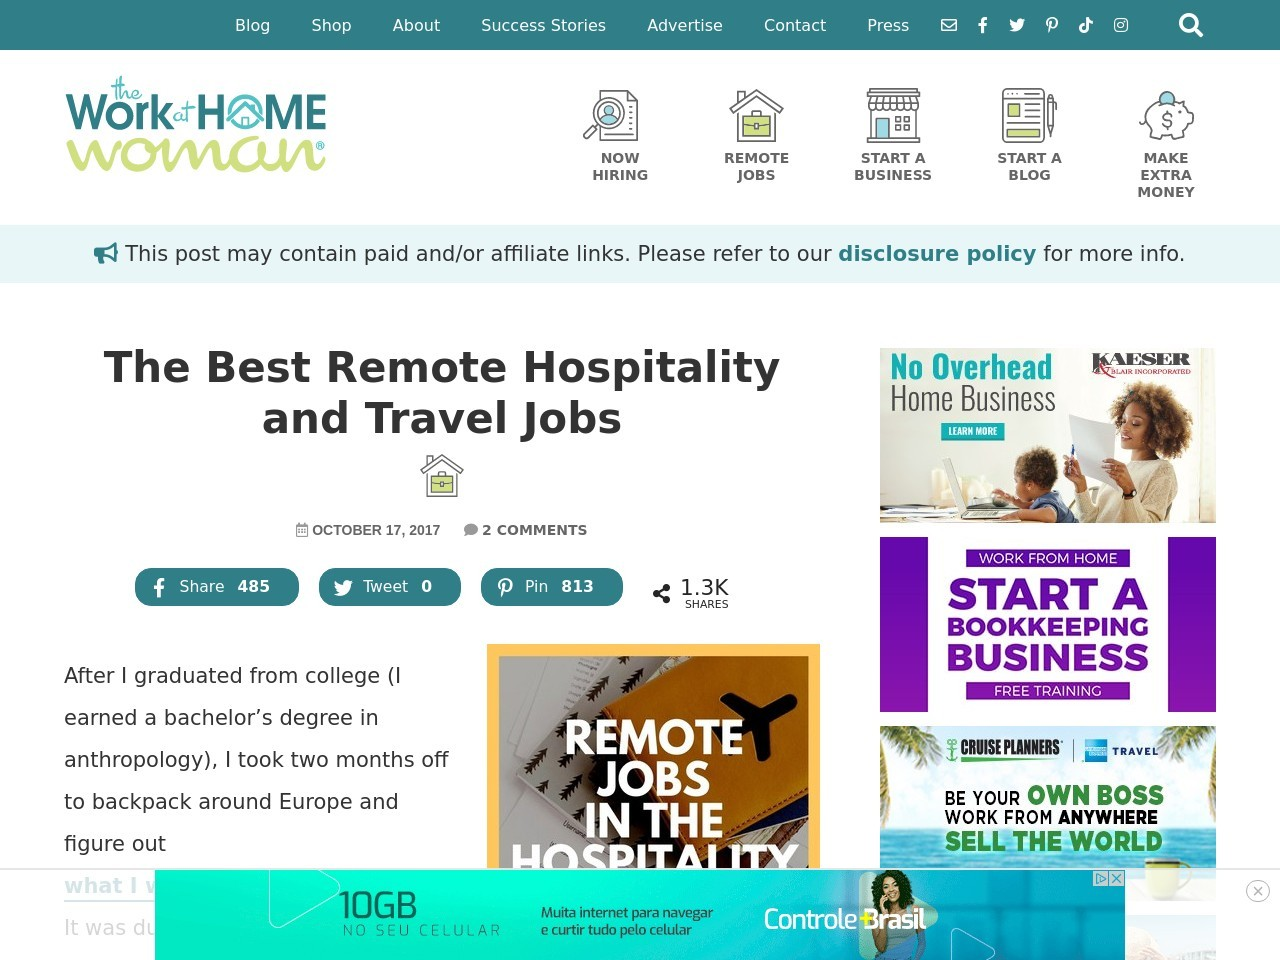 Remote Jobs in the Hospitality, Travel, and Tourism Industries